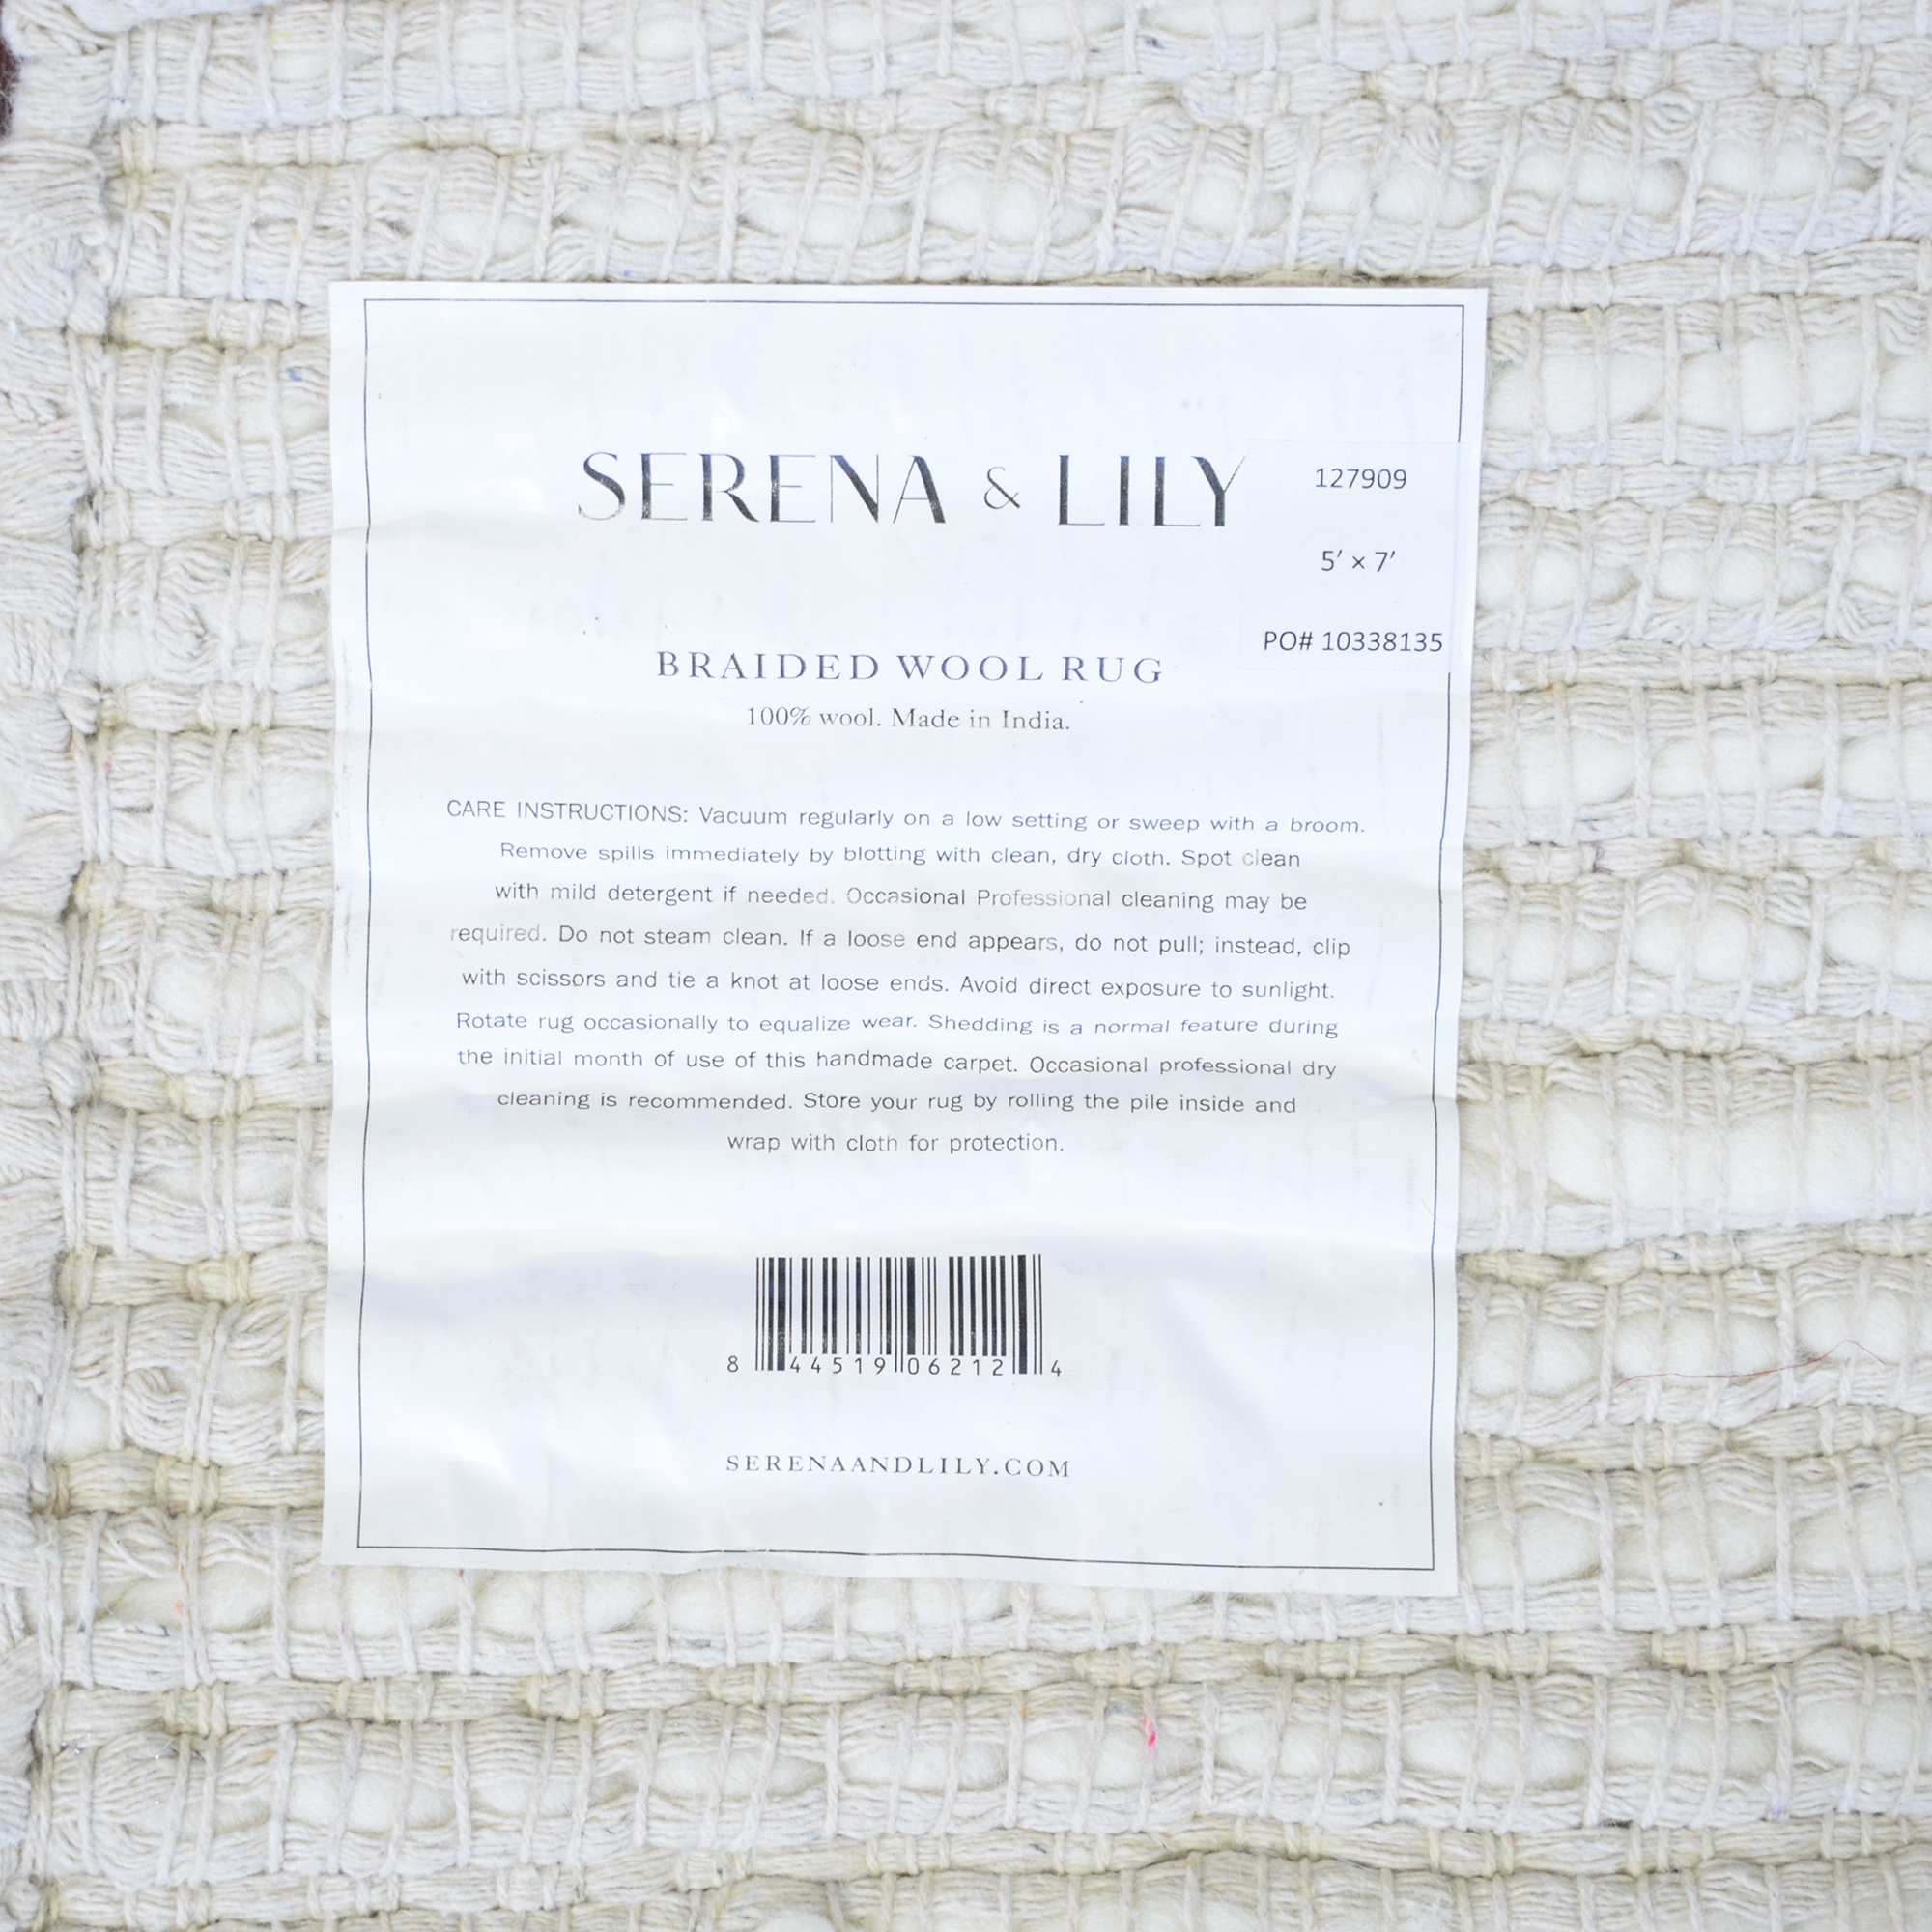 Serena & Lily Serena & Lilly Braided Wool Rug Rugs